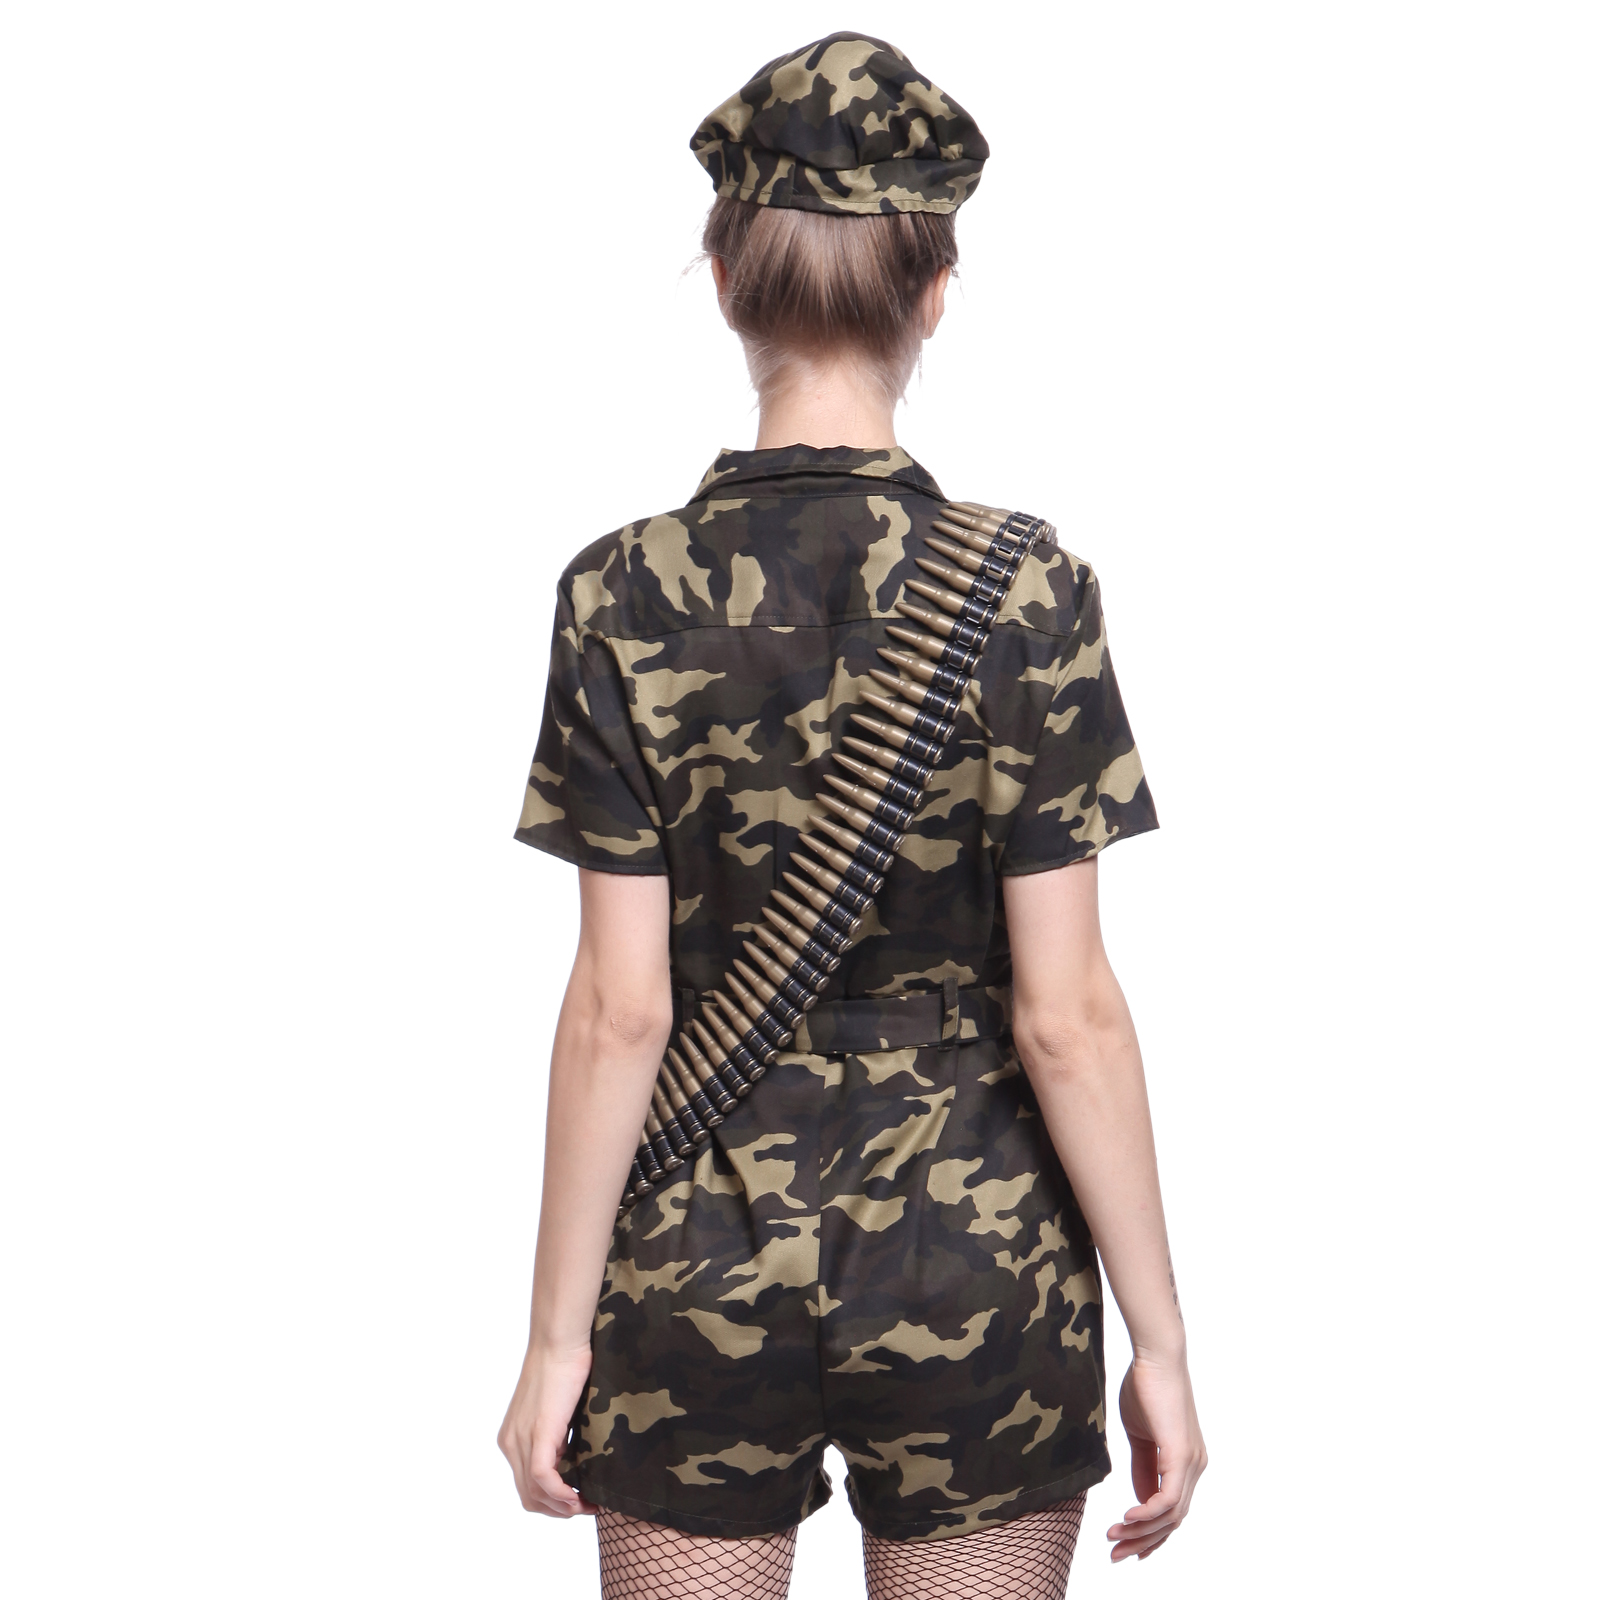 82875eaf4 Womens Sexy Army Girl Costume Camo Soldier Fancy Dress Roleplay Outfit